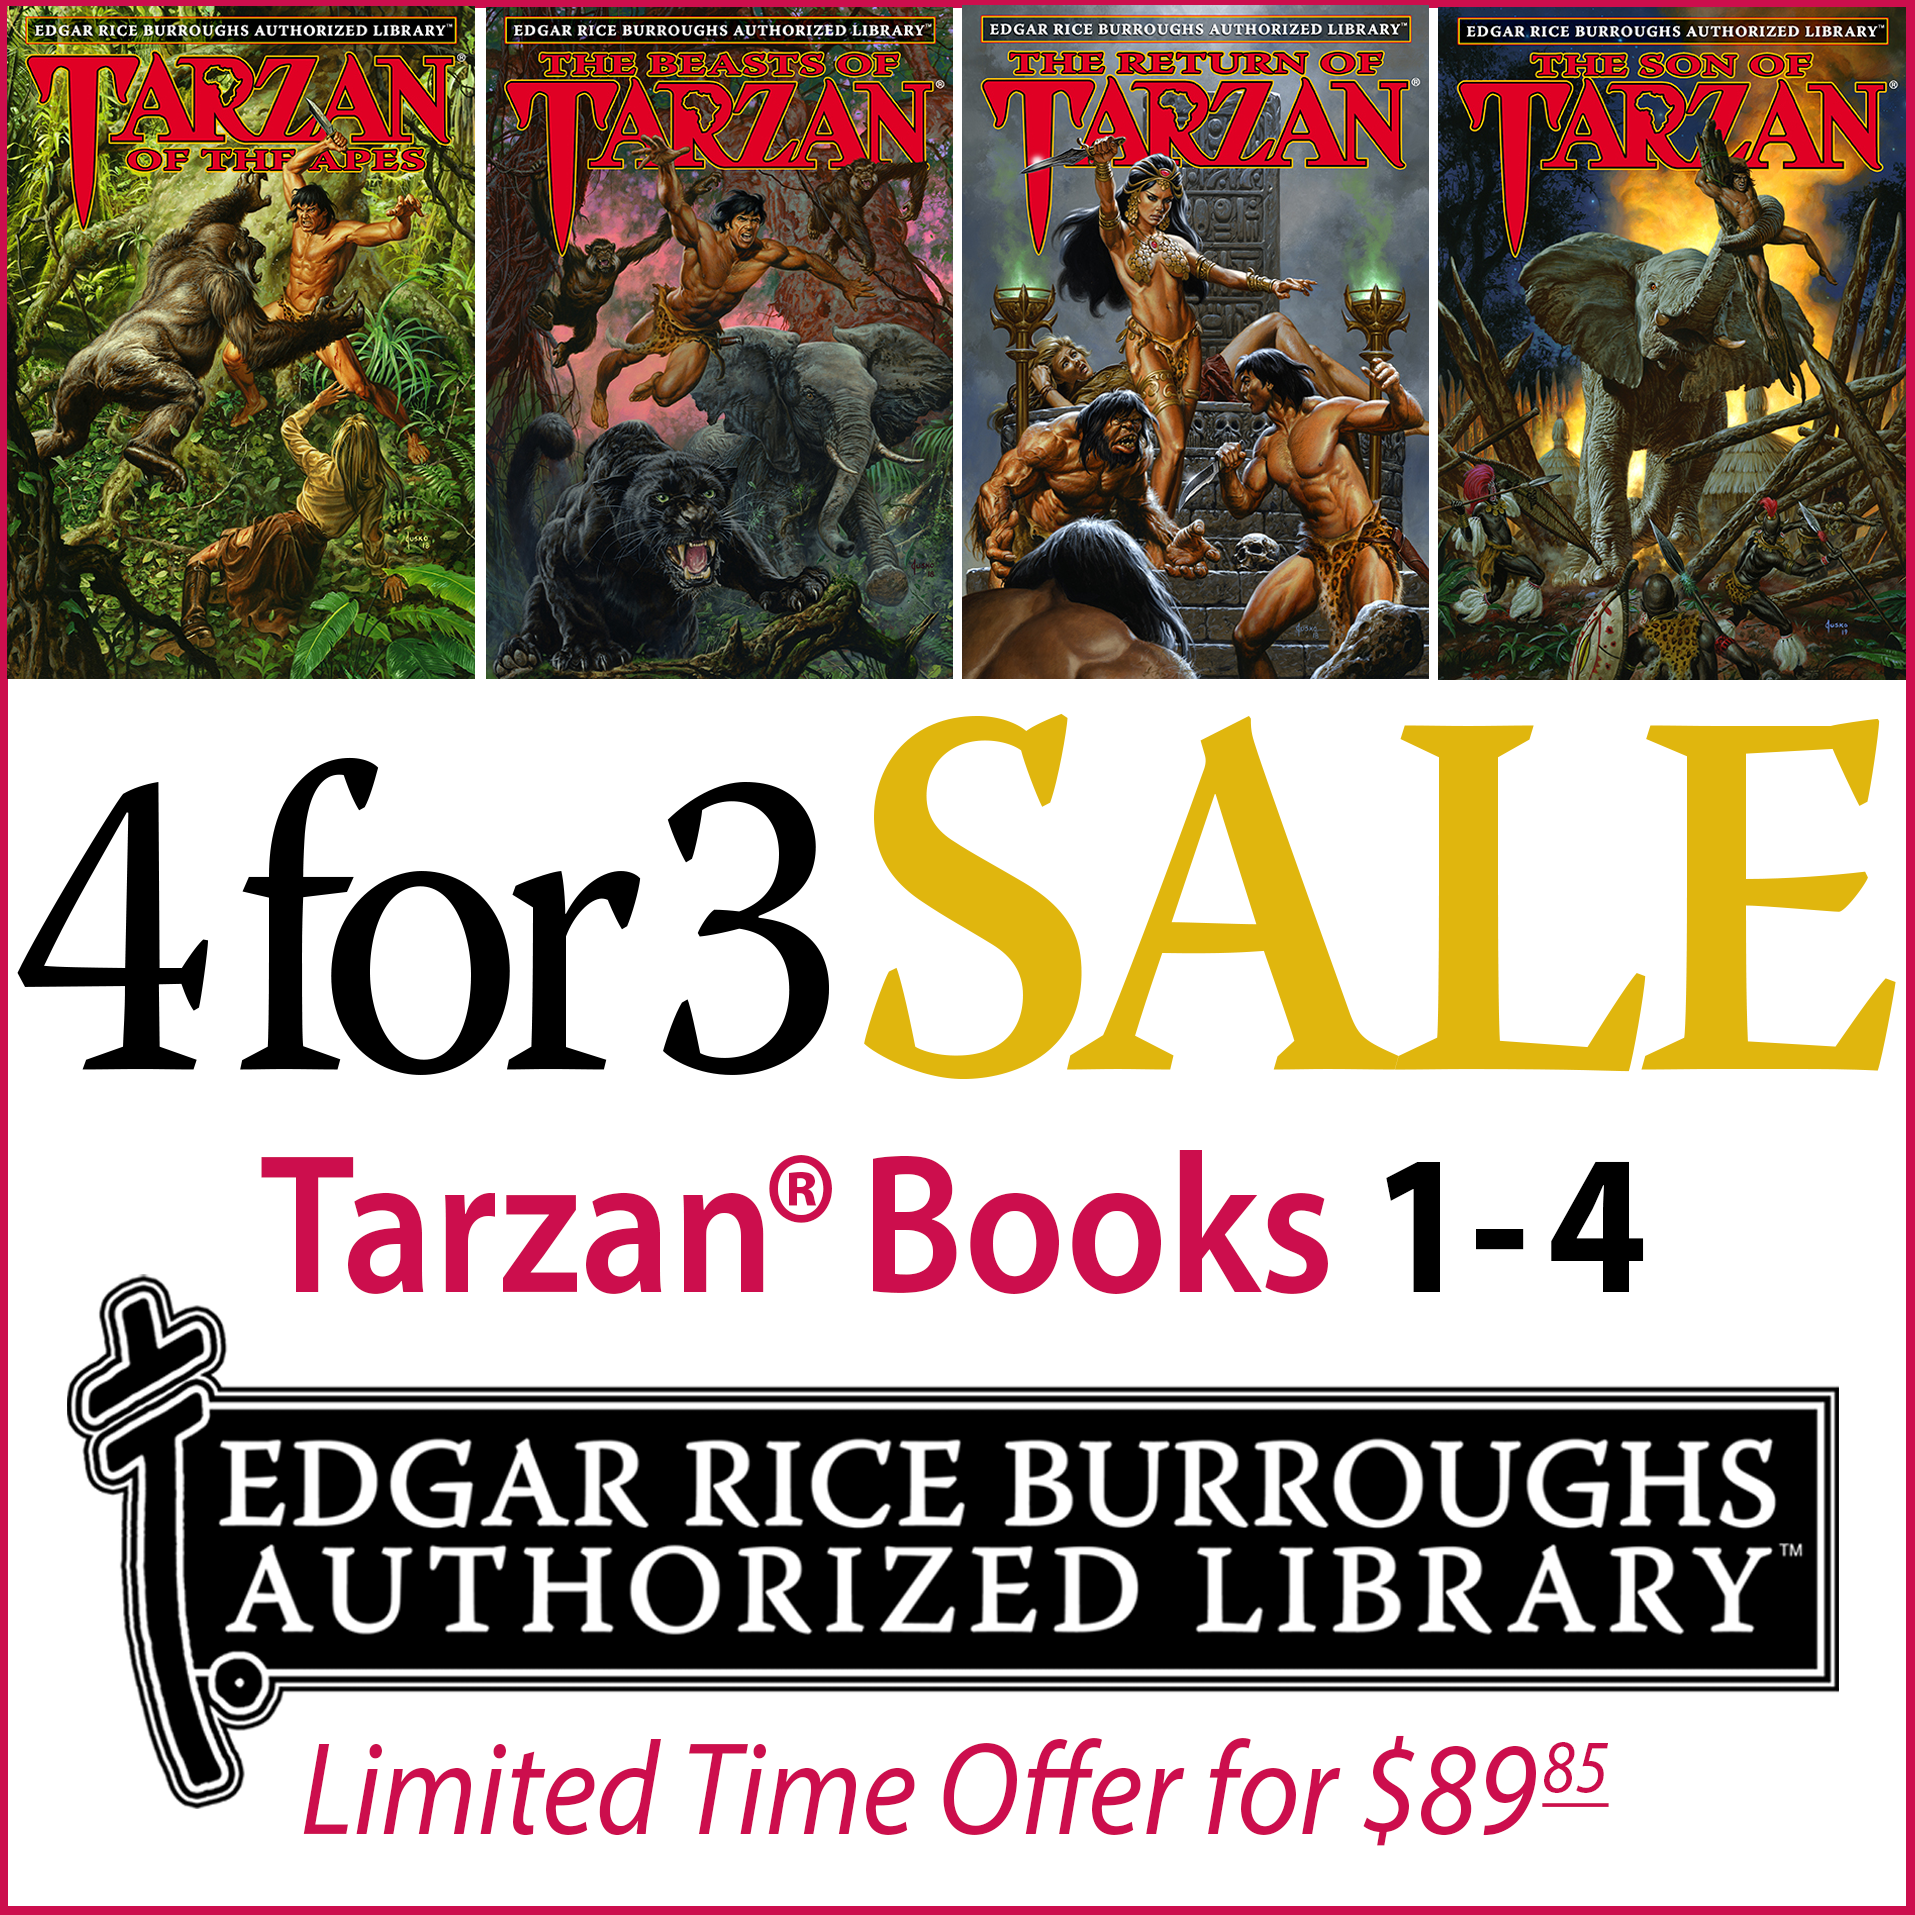 Edgar Rice Burroughs Authorized Library Sale (Books 1-4)